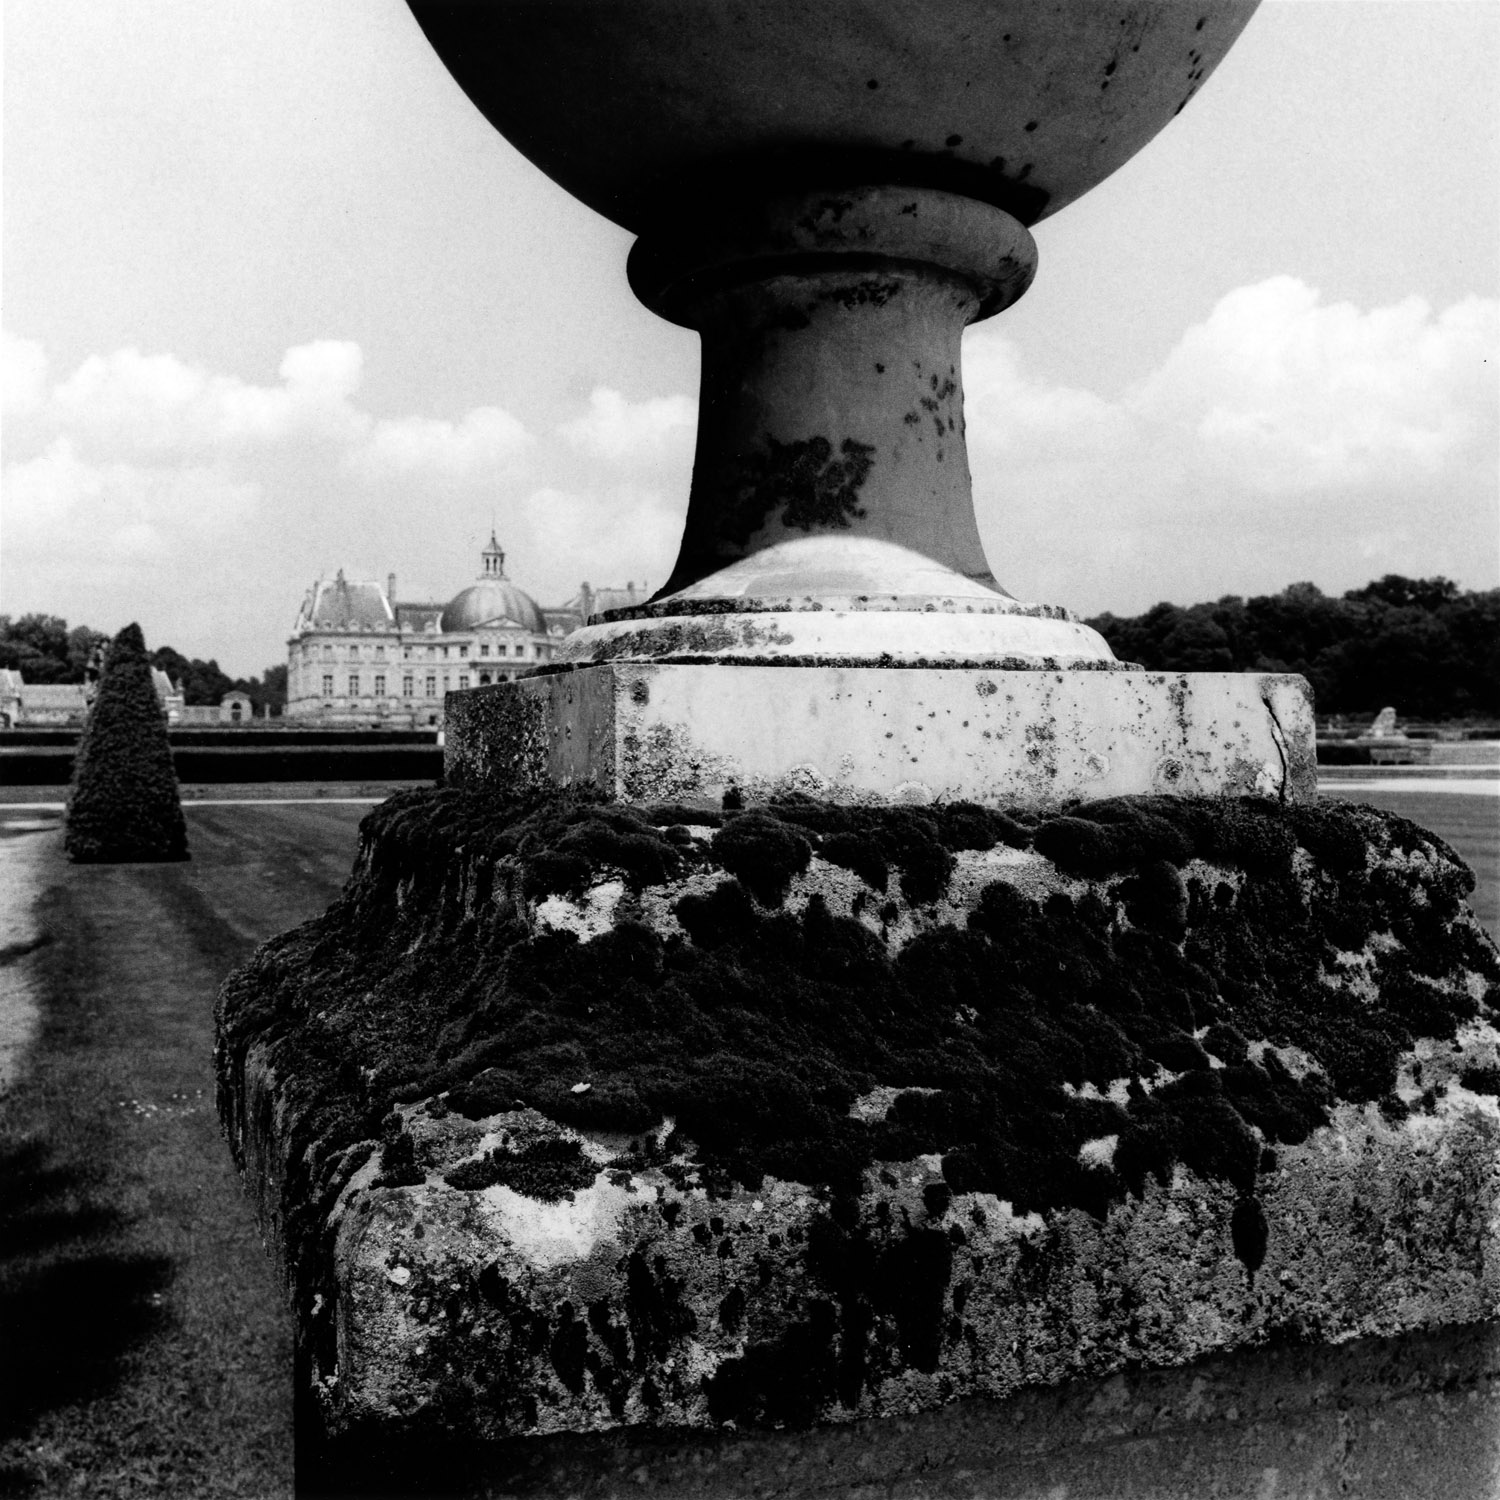 Moss and Urn, Vaux le Vicomte